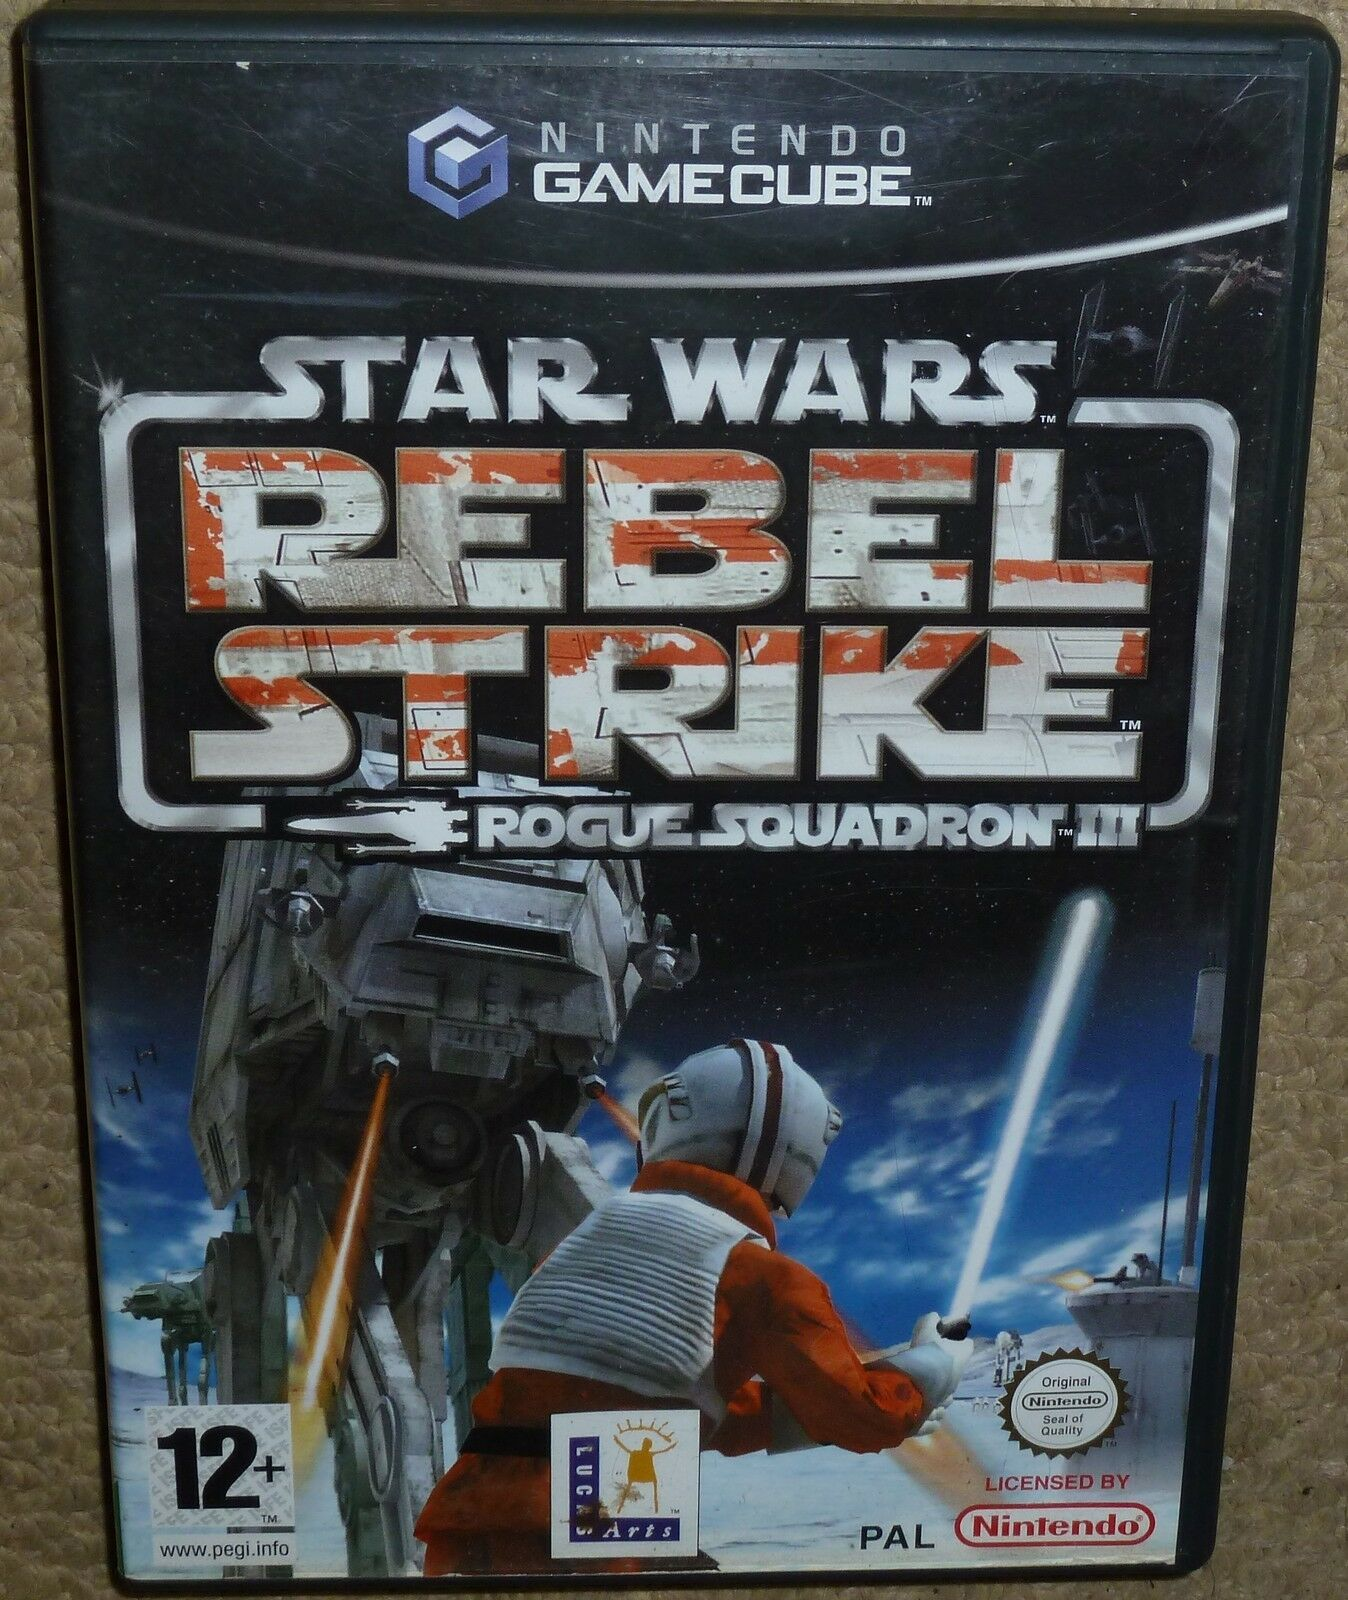 STAR WARS REBEL STRIKE Rogue Squadron 3 - Occasion StarWars